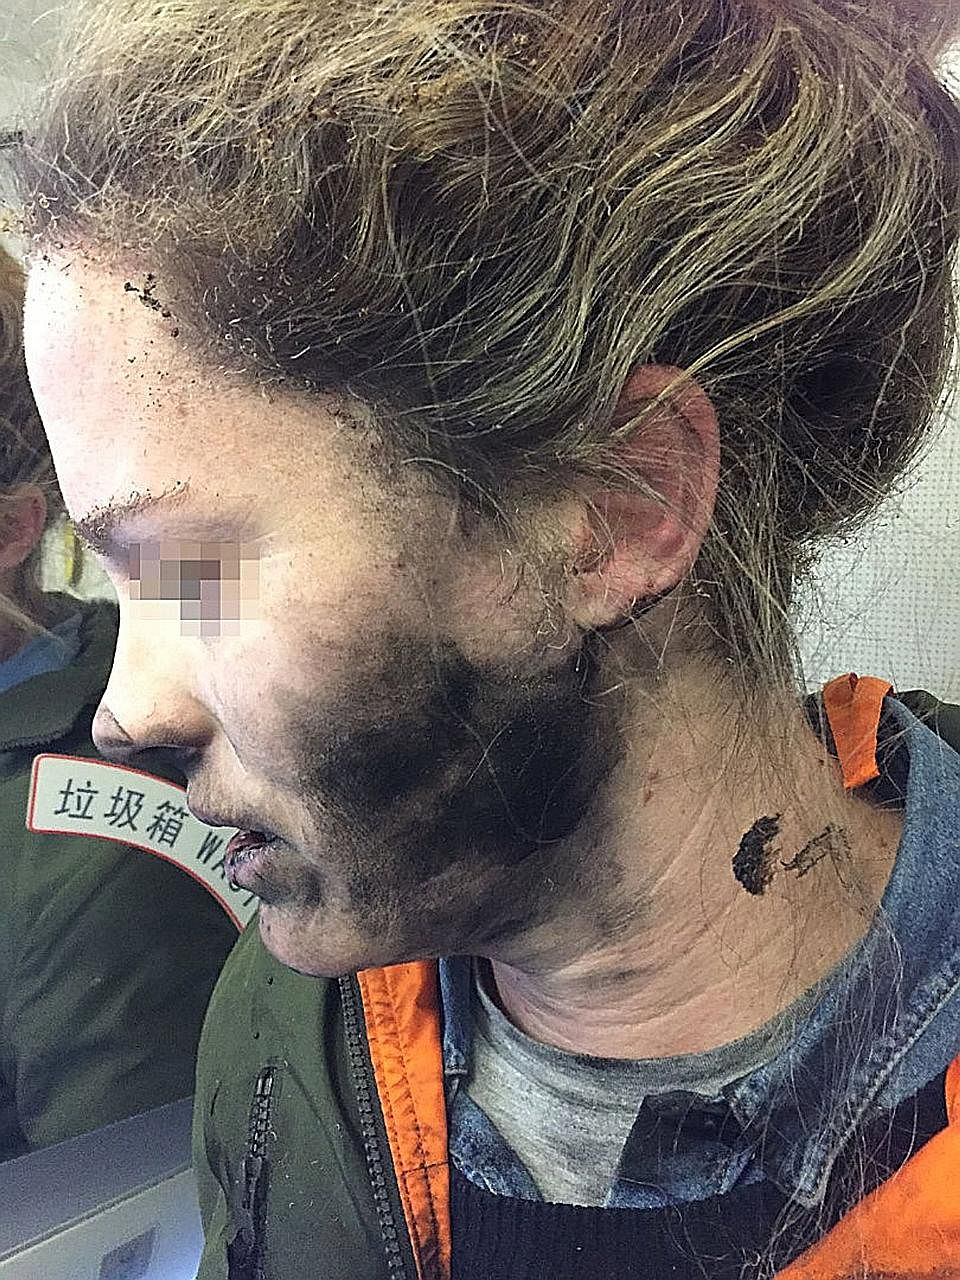 The battery-operated headphones exploded while the woman was listening to music and dozing about two hours into her flight from Beijing to Melbourne on Feb 19.